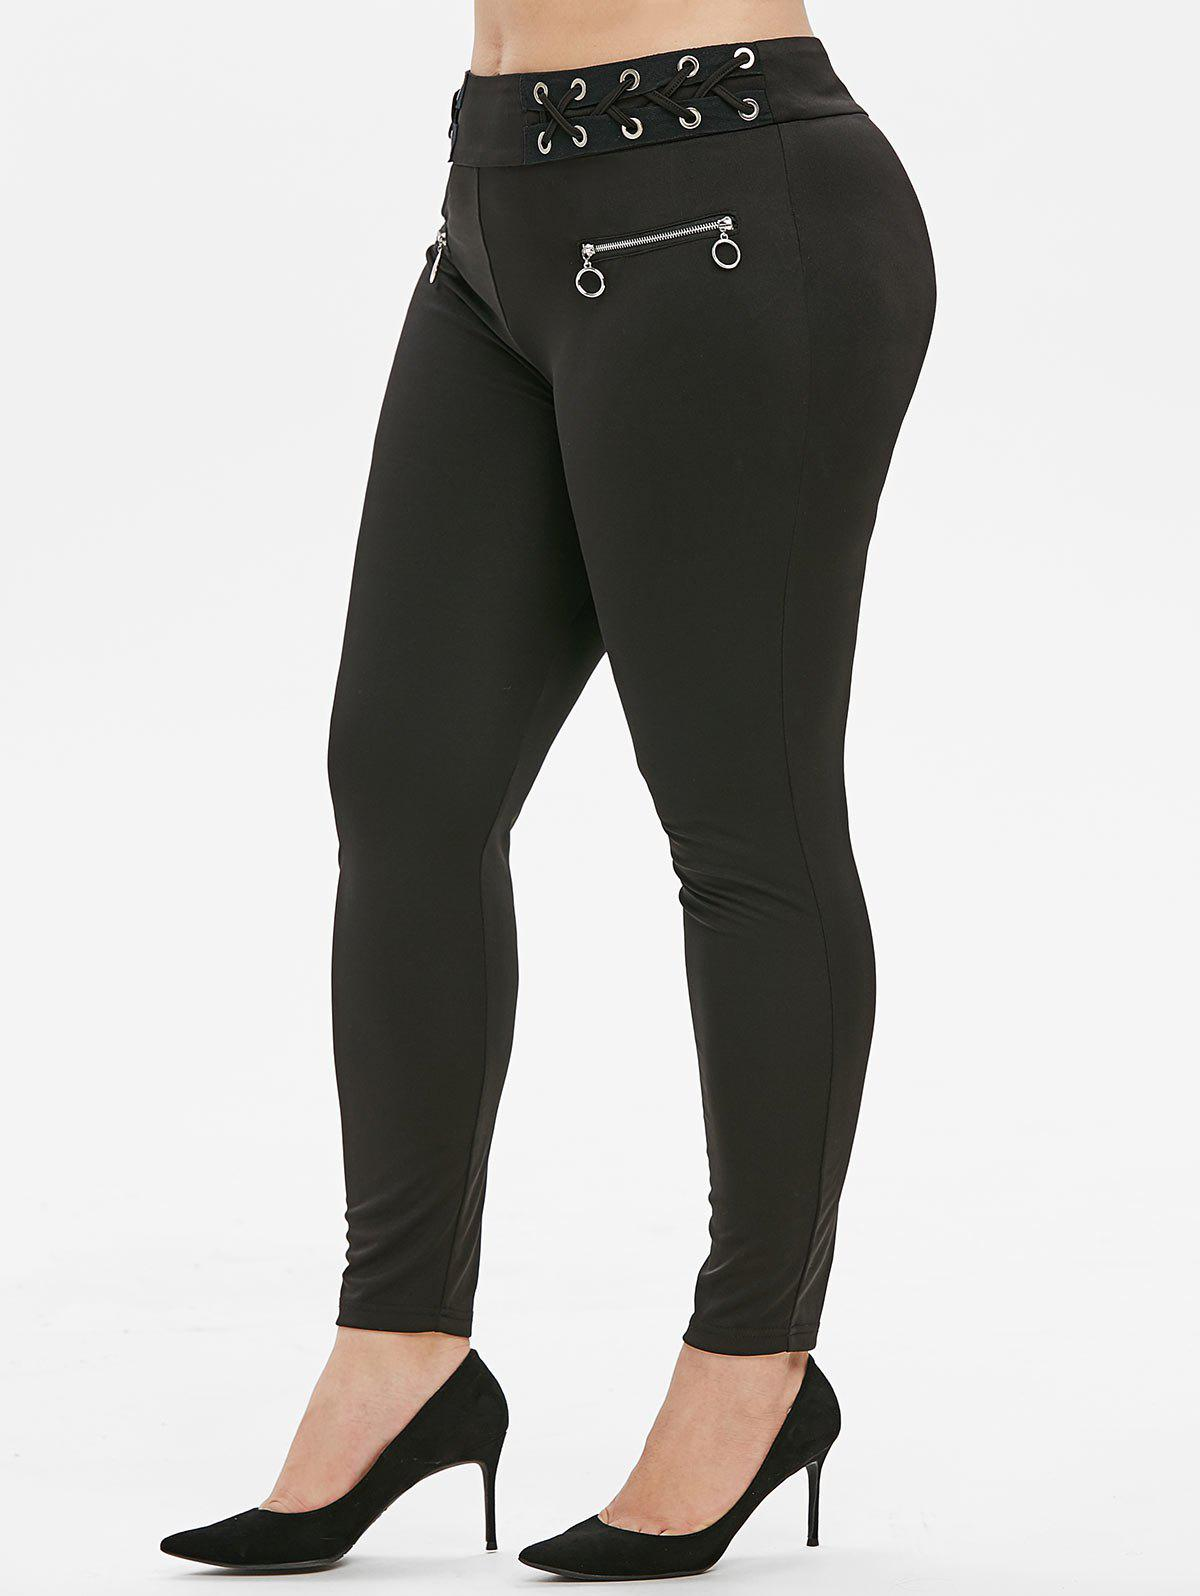 Plus Size Grommets Criss Cross Zippers Pants - BLACK L